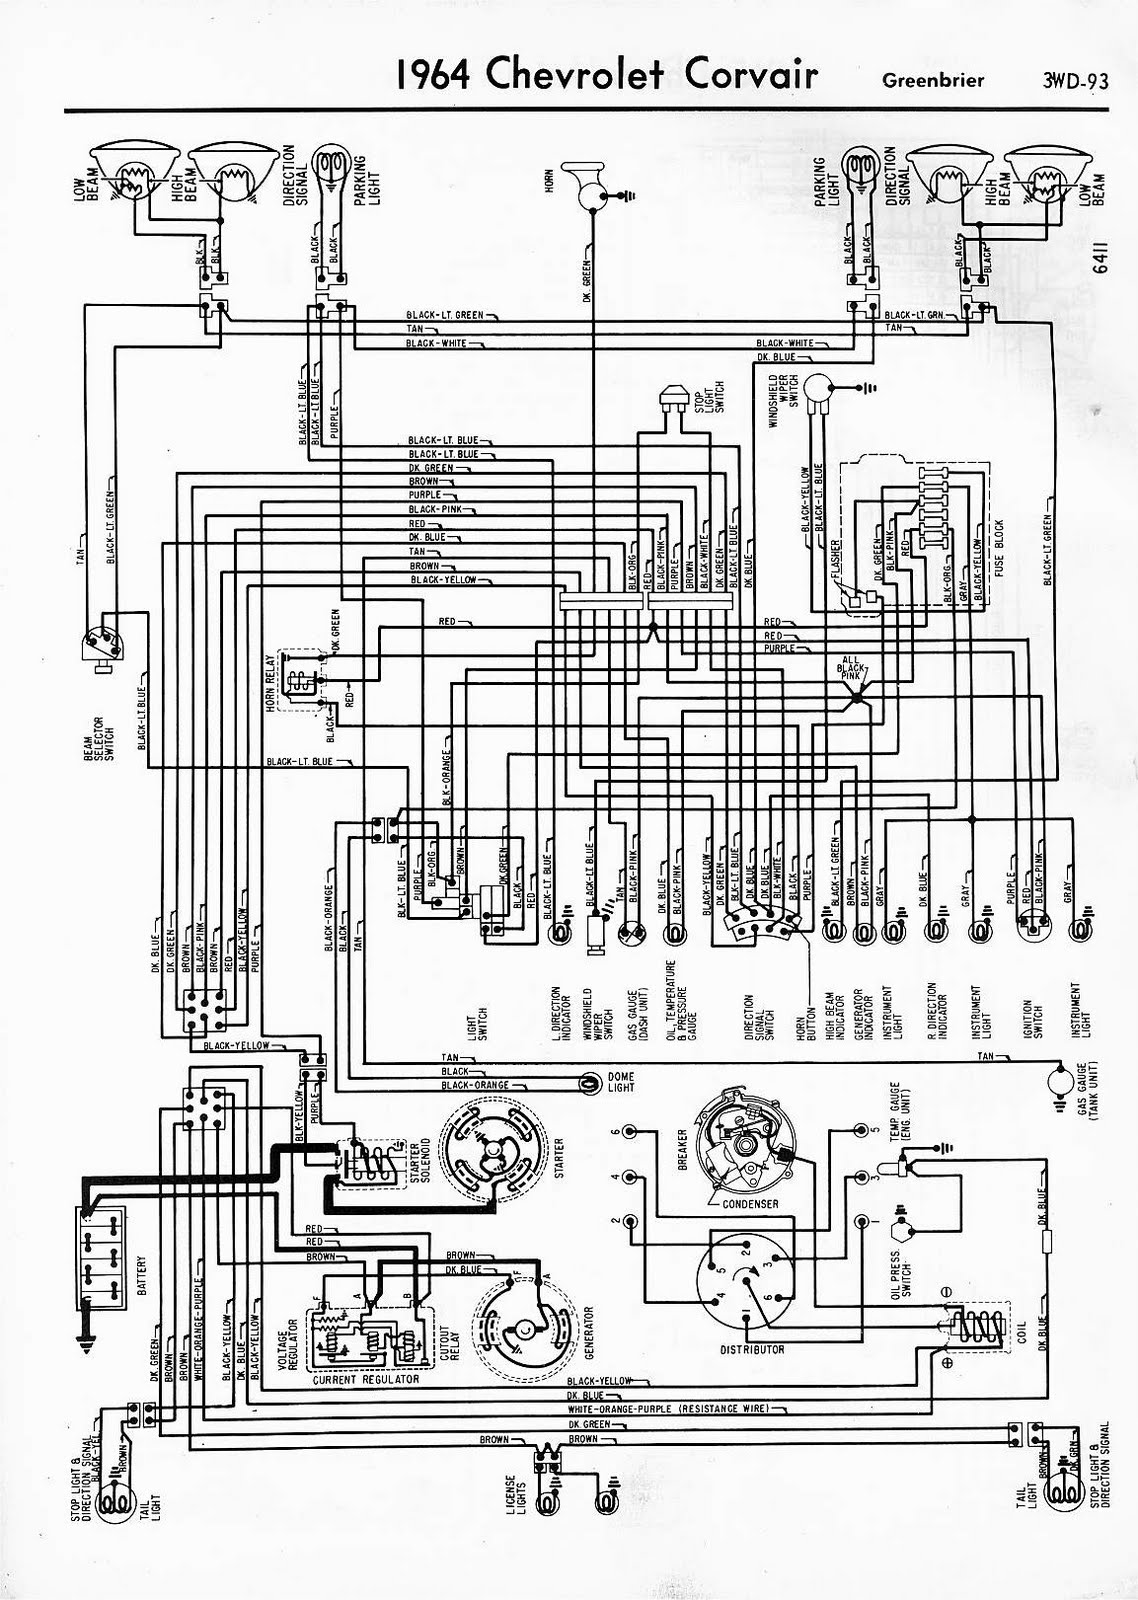 free auto wiring diagram 1964 chevrolet corvair 2000 f150 fuse panel diagram ford e 250 [ 1138 x 1600 Pixel ]